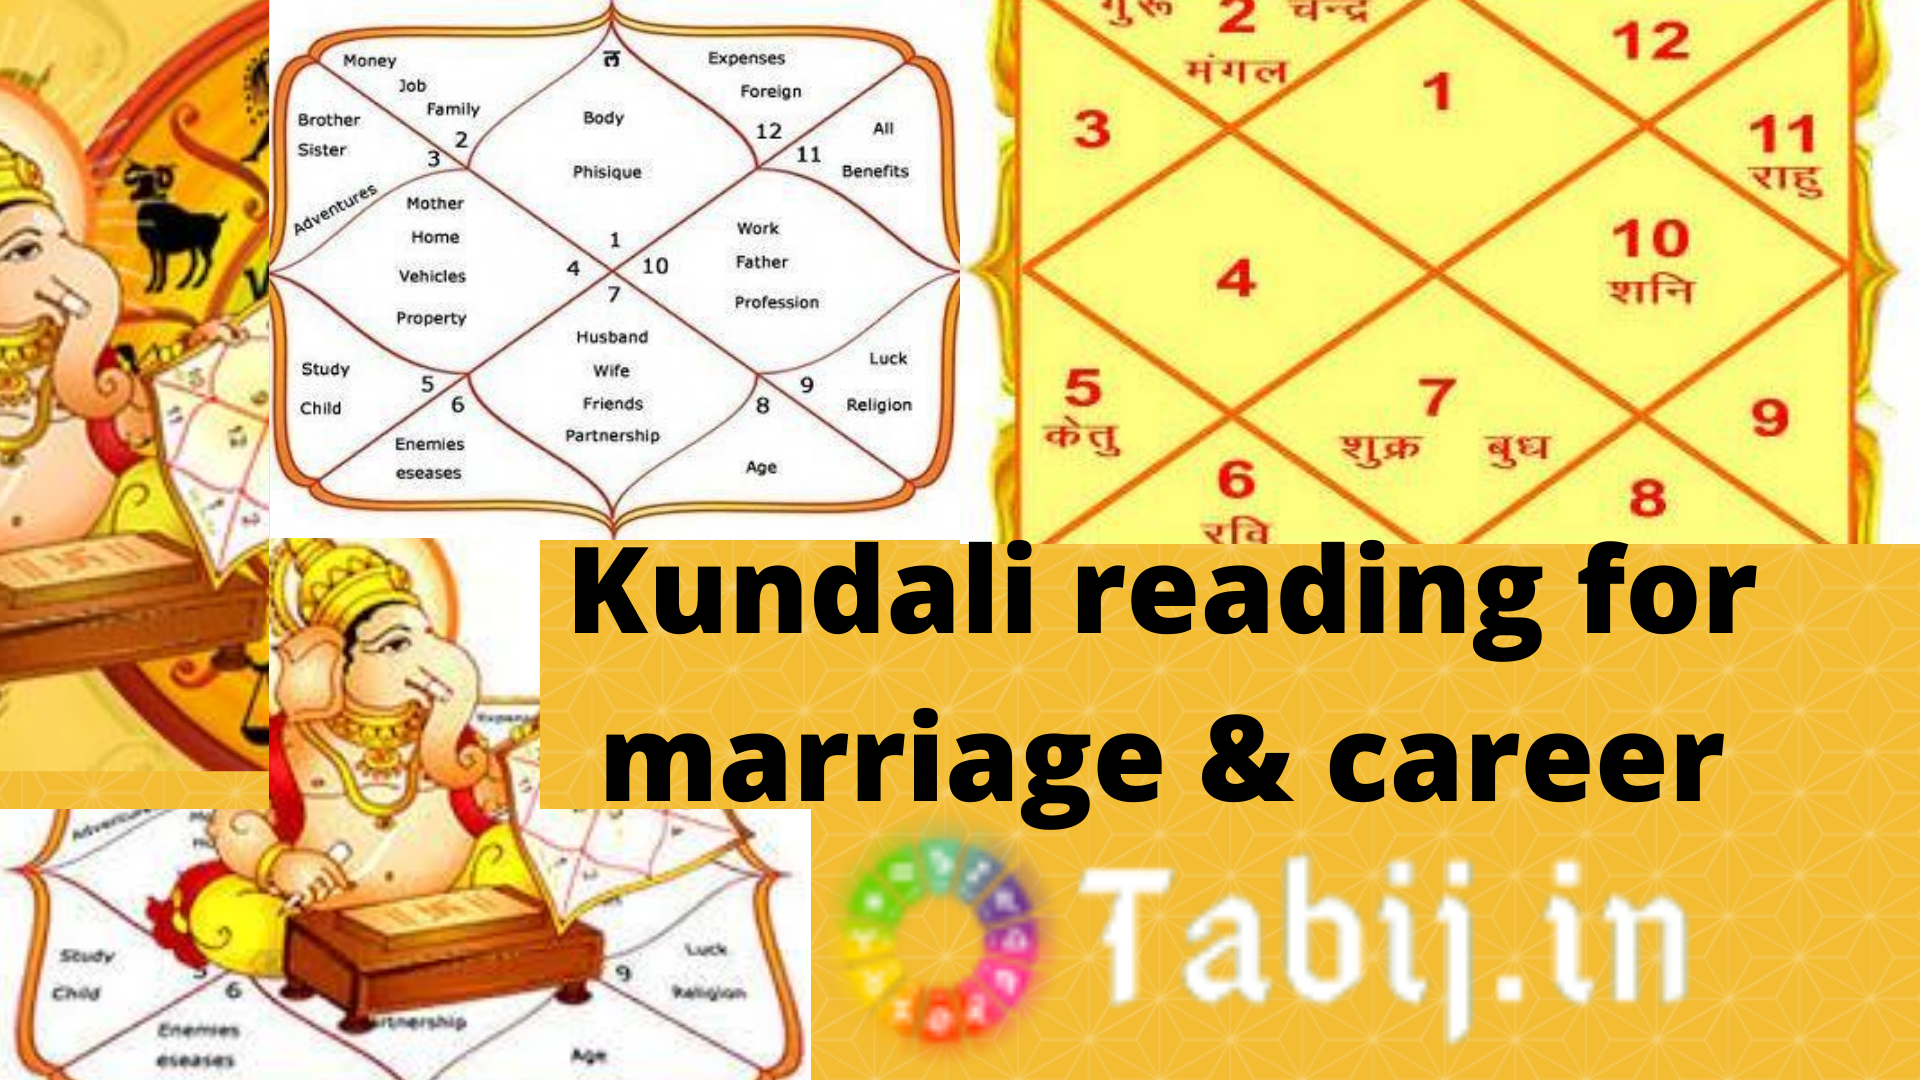 kundali reading for marriage & career